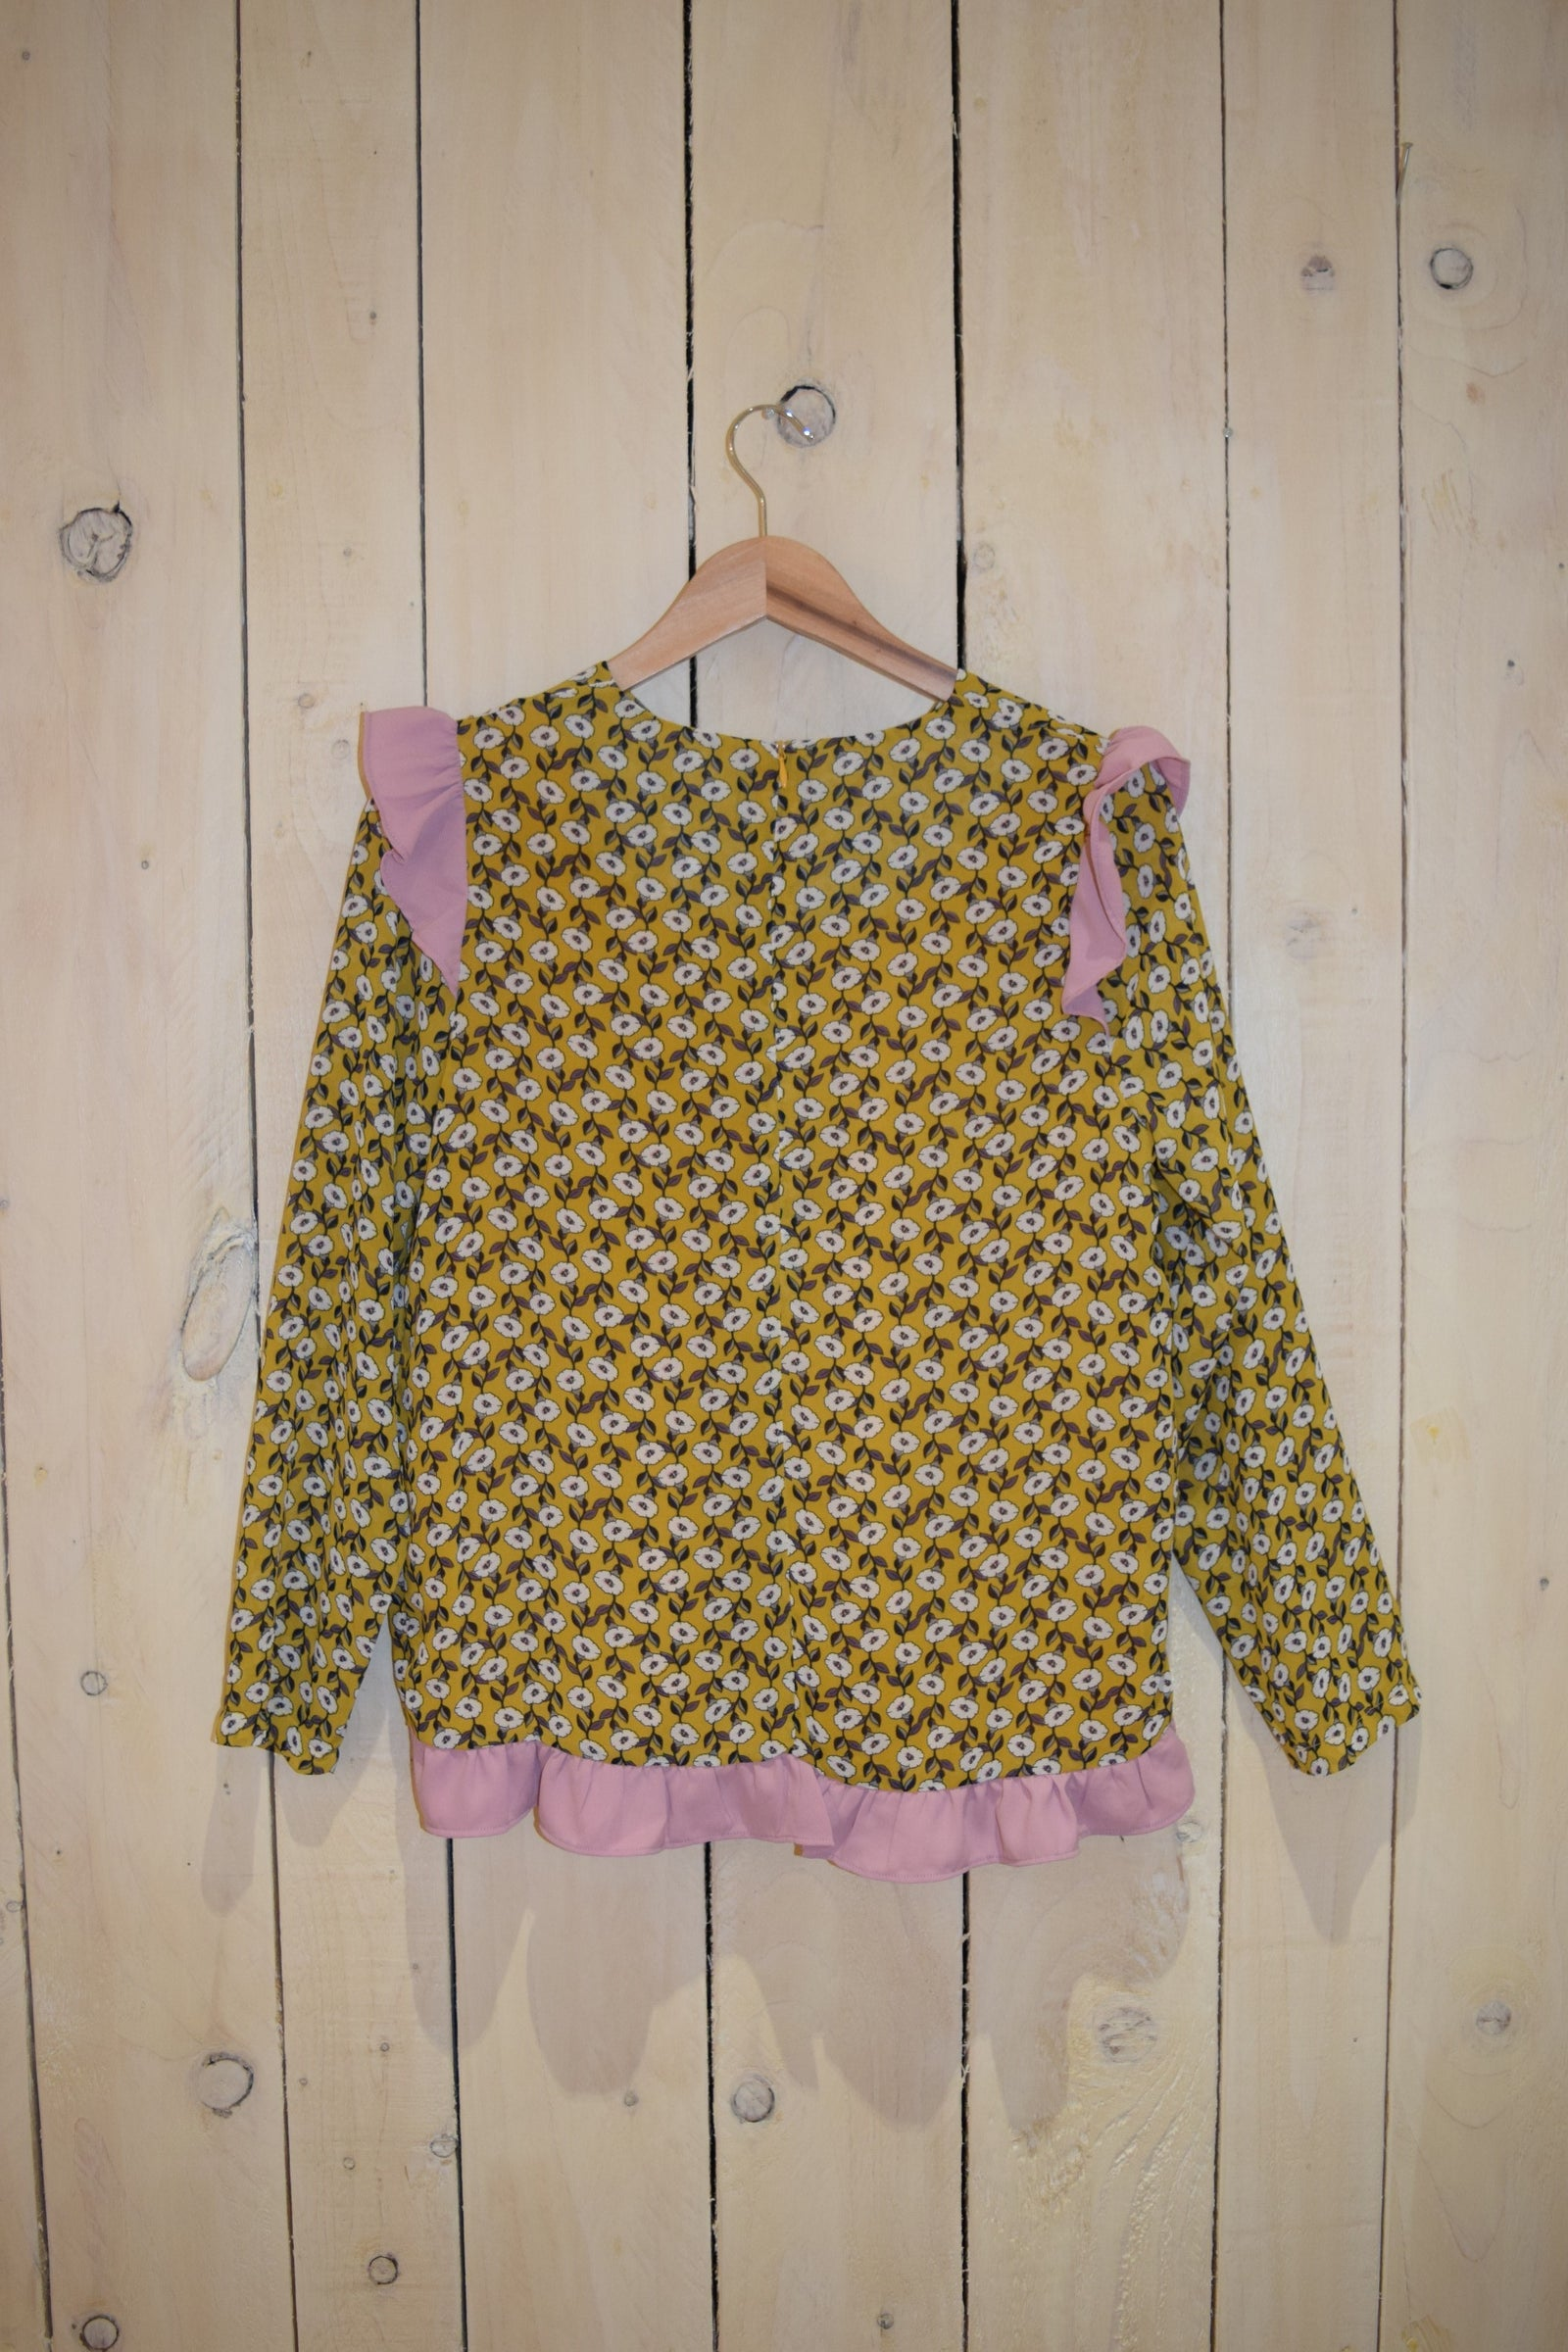 Pushing Daisies Top - With Love Omagh